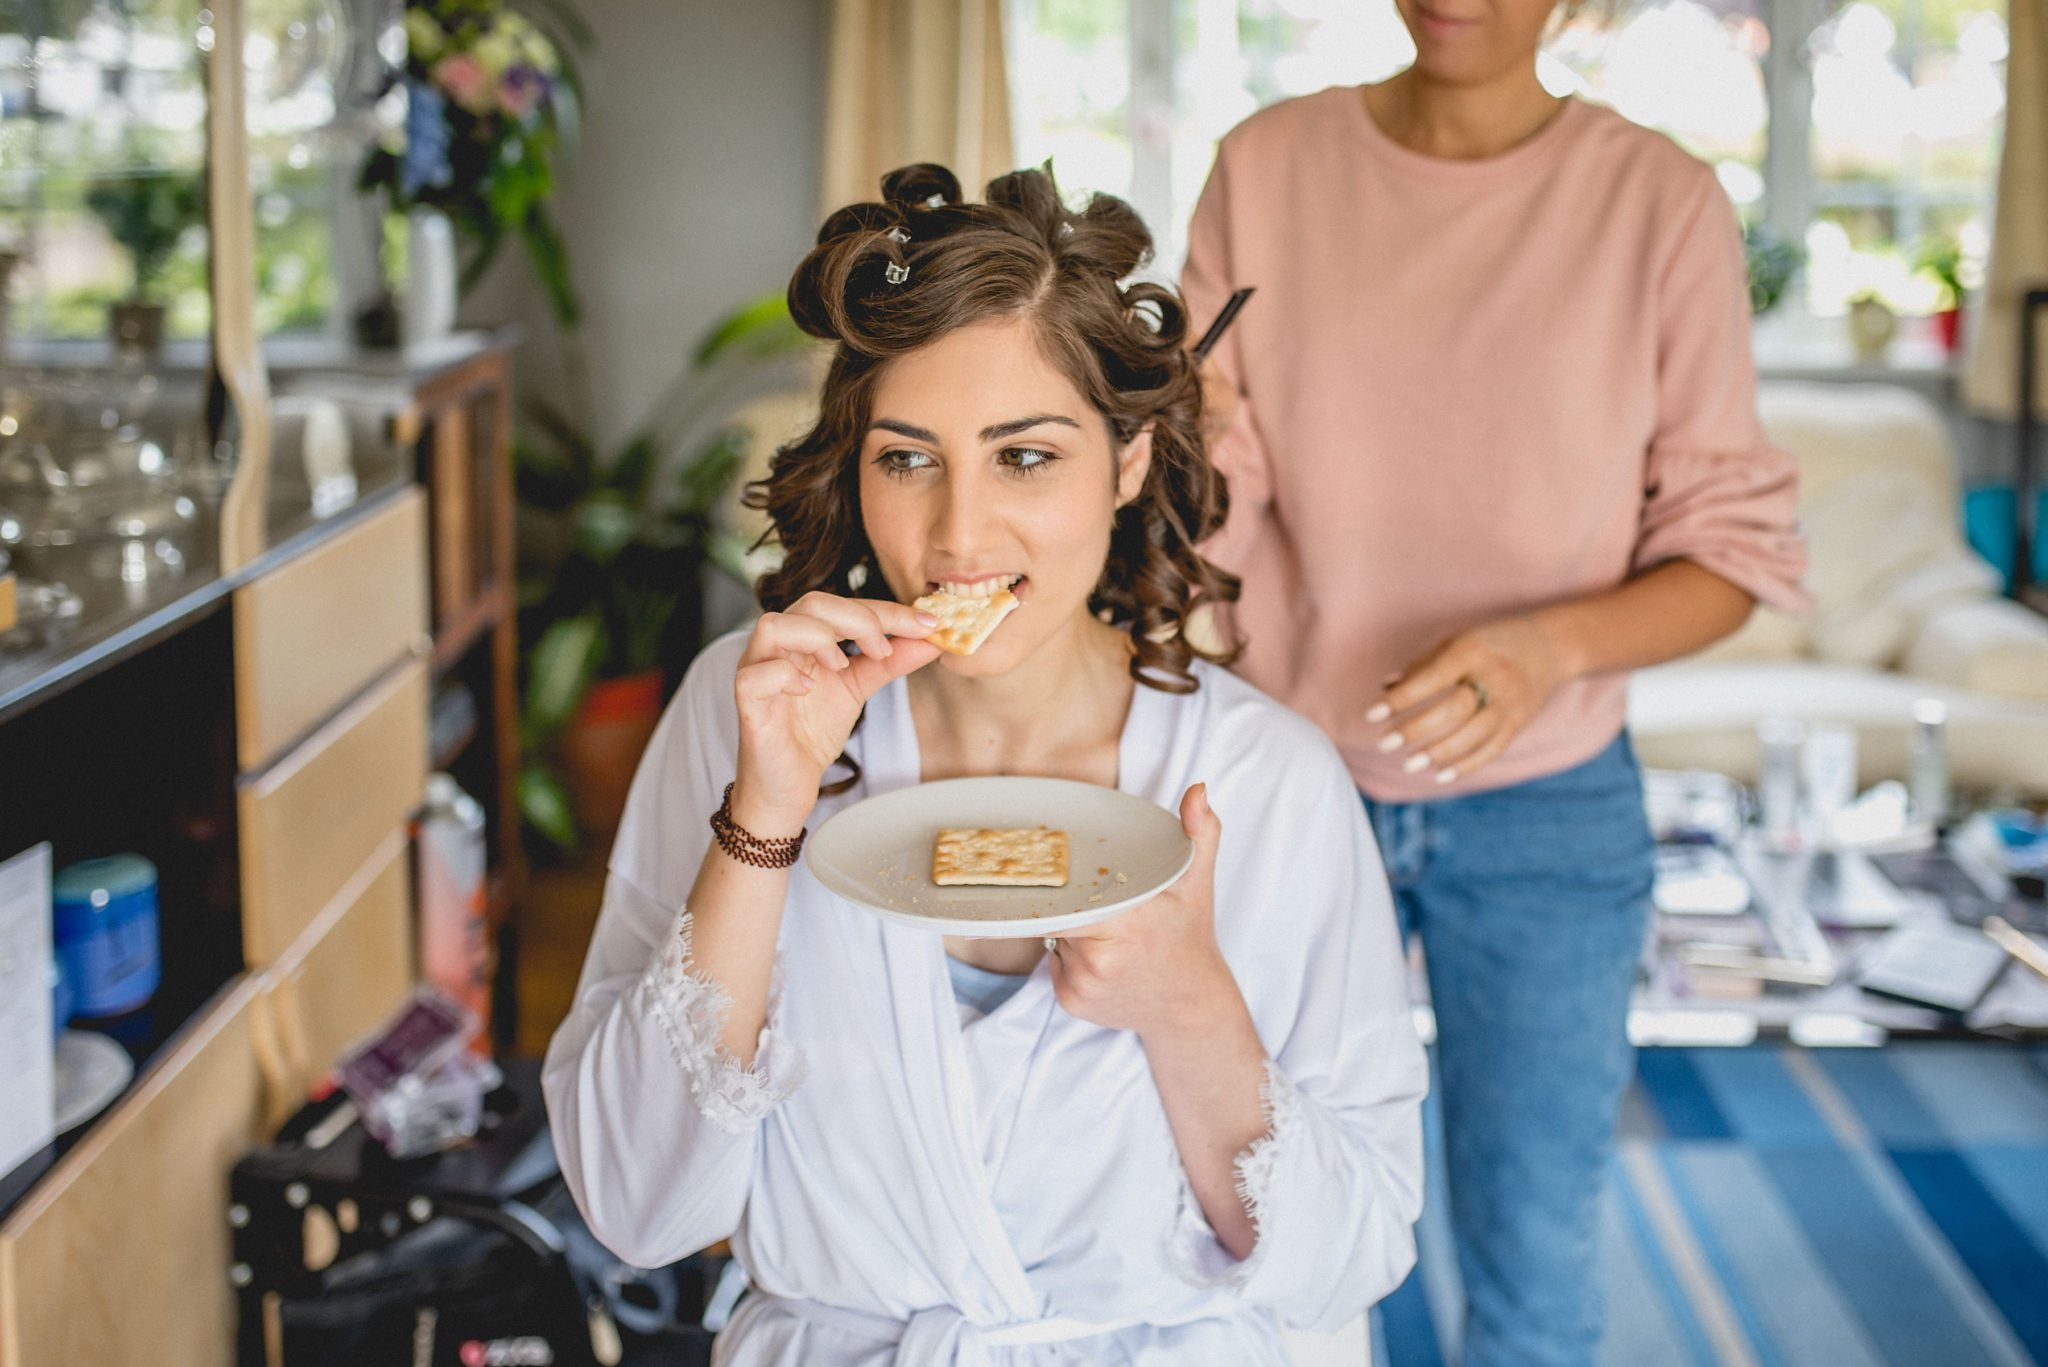 Bride Maria snacks on some crackers while getting her hair done before her wedding.